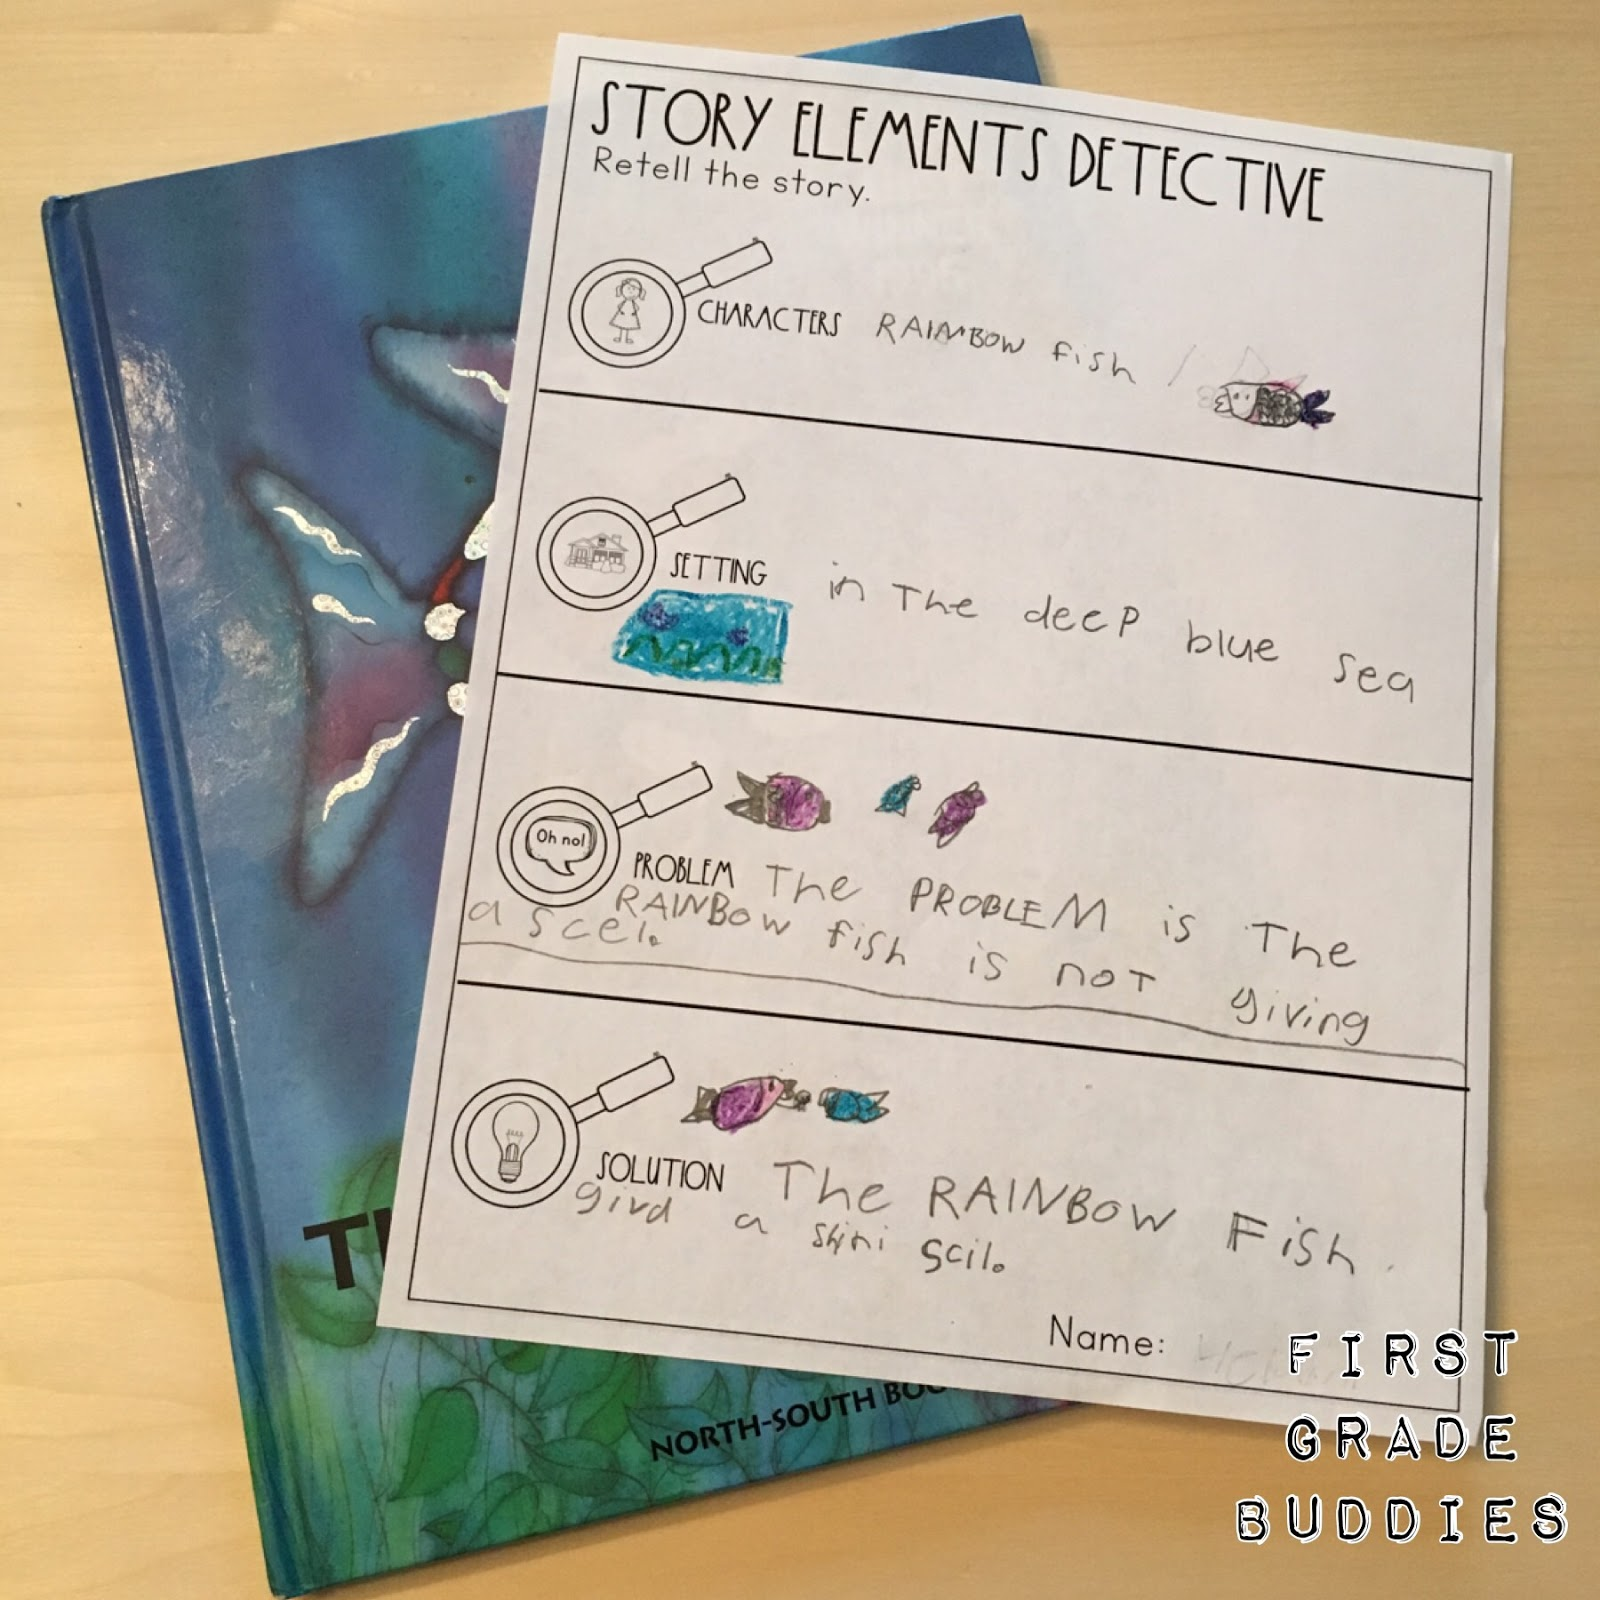 small resolution of Story Elements Detective   First Grade Buddies